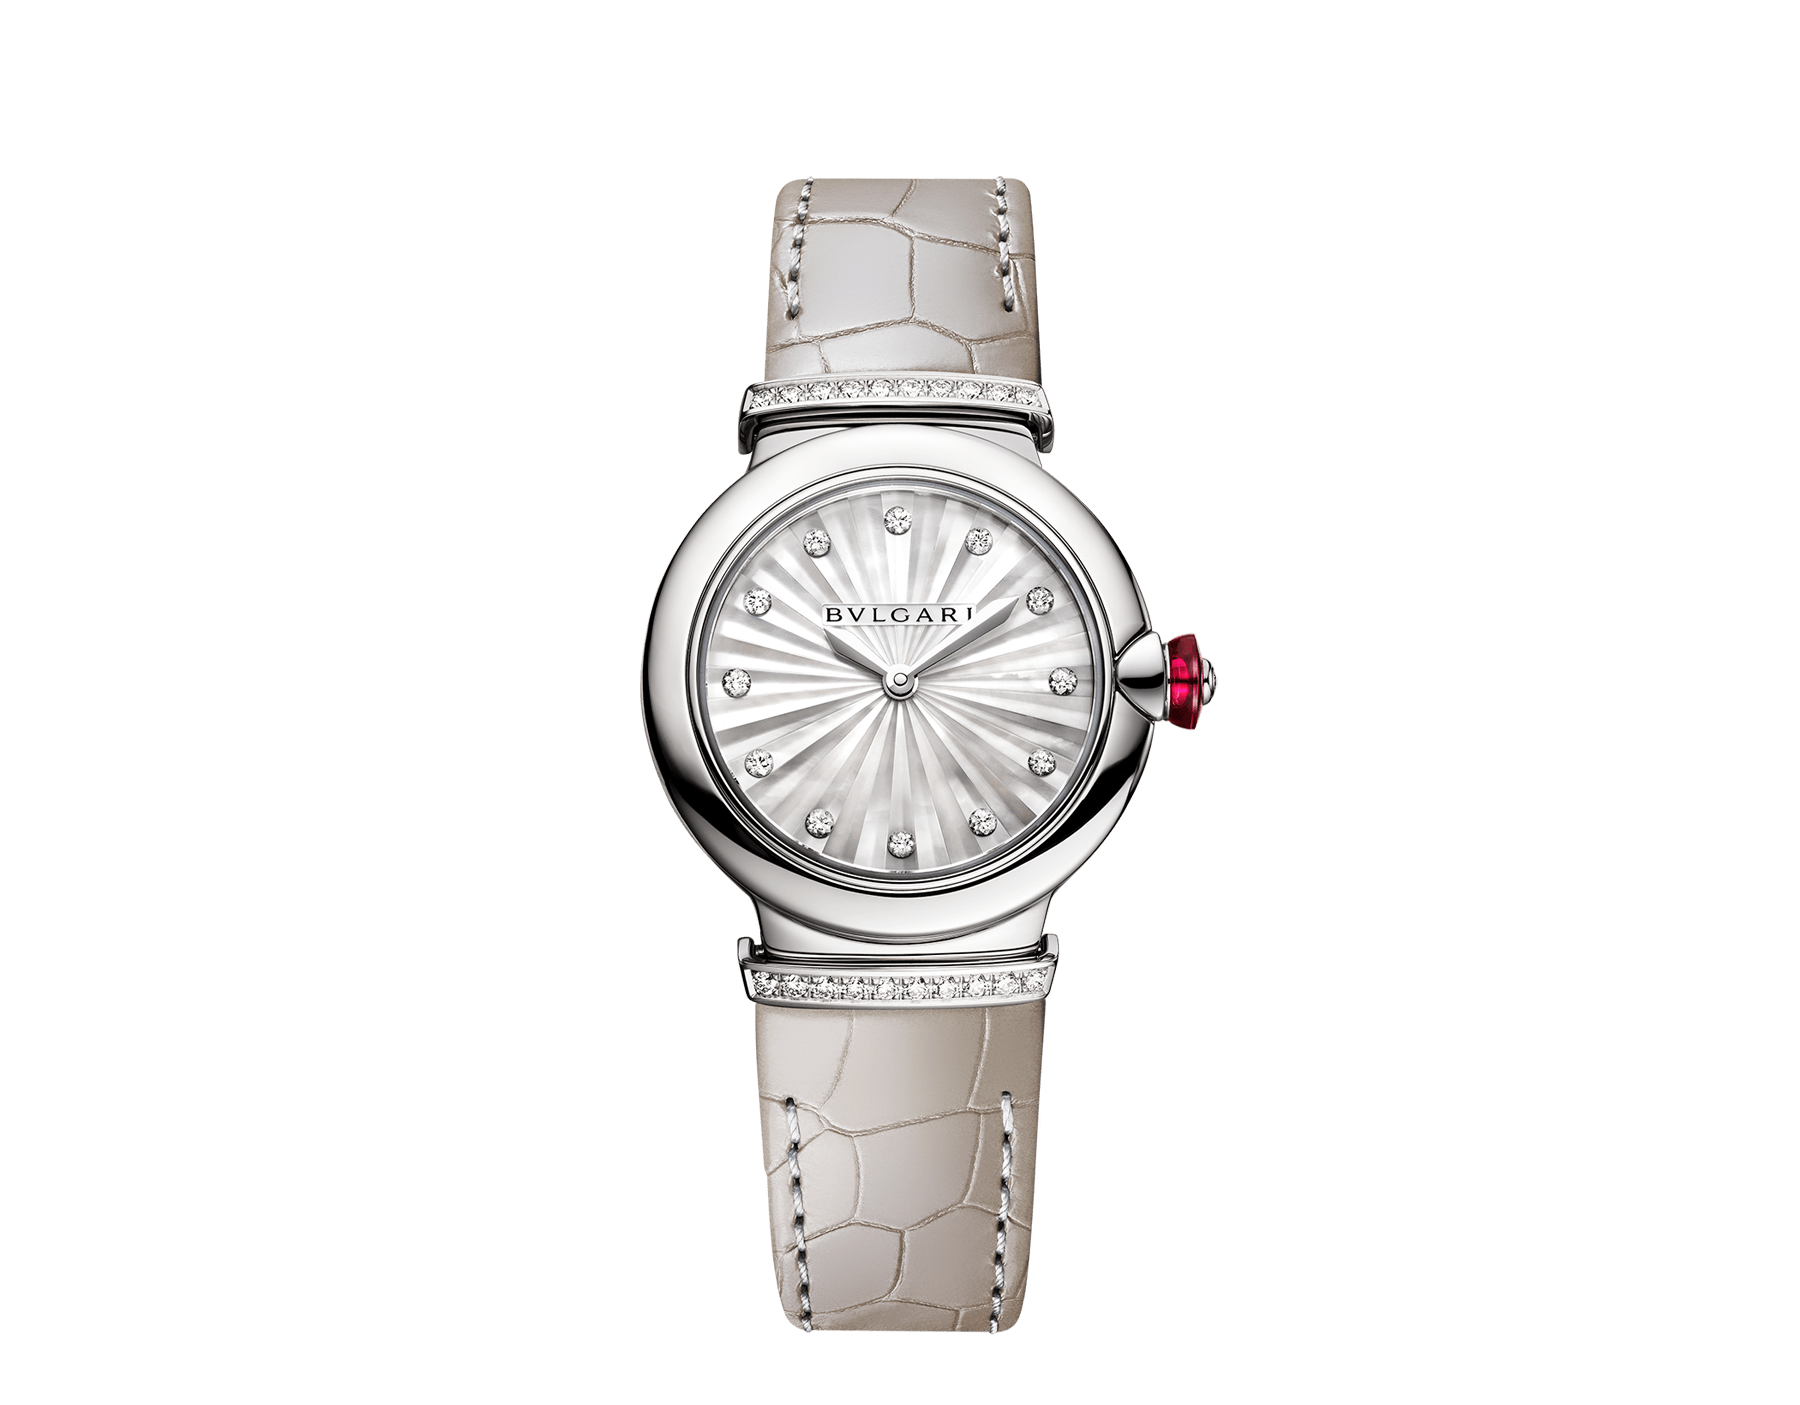 Montre LVCEA avec boîtier en acier inoxydable, cadran avec marqueterie Intarsio de nacre blanche, index sertis de diamants, maillons en acier inoxydable sertis de diamants et bracelet en alligator gris. 103367 image 1